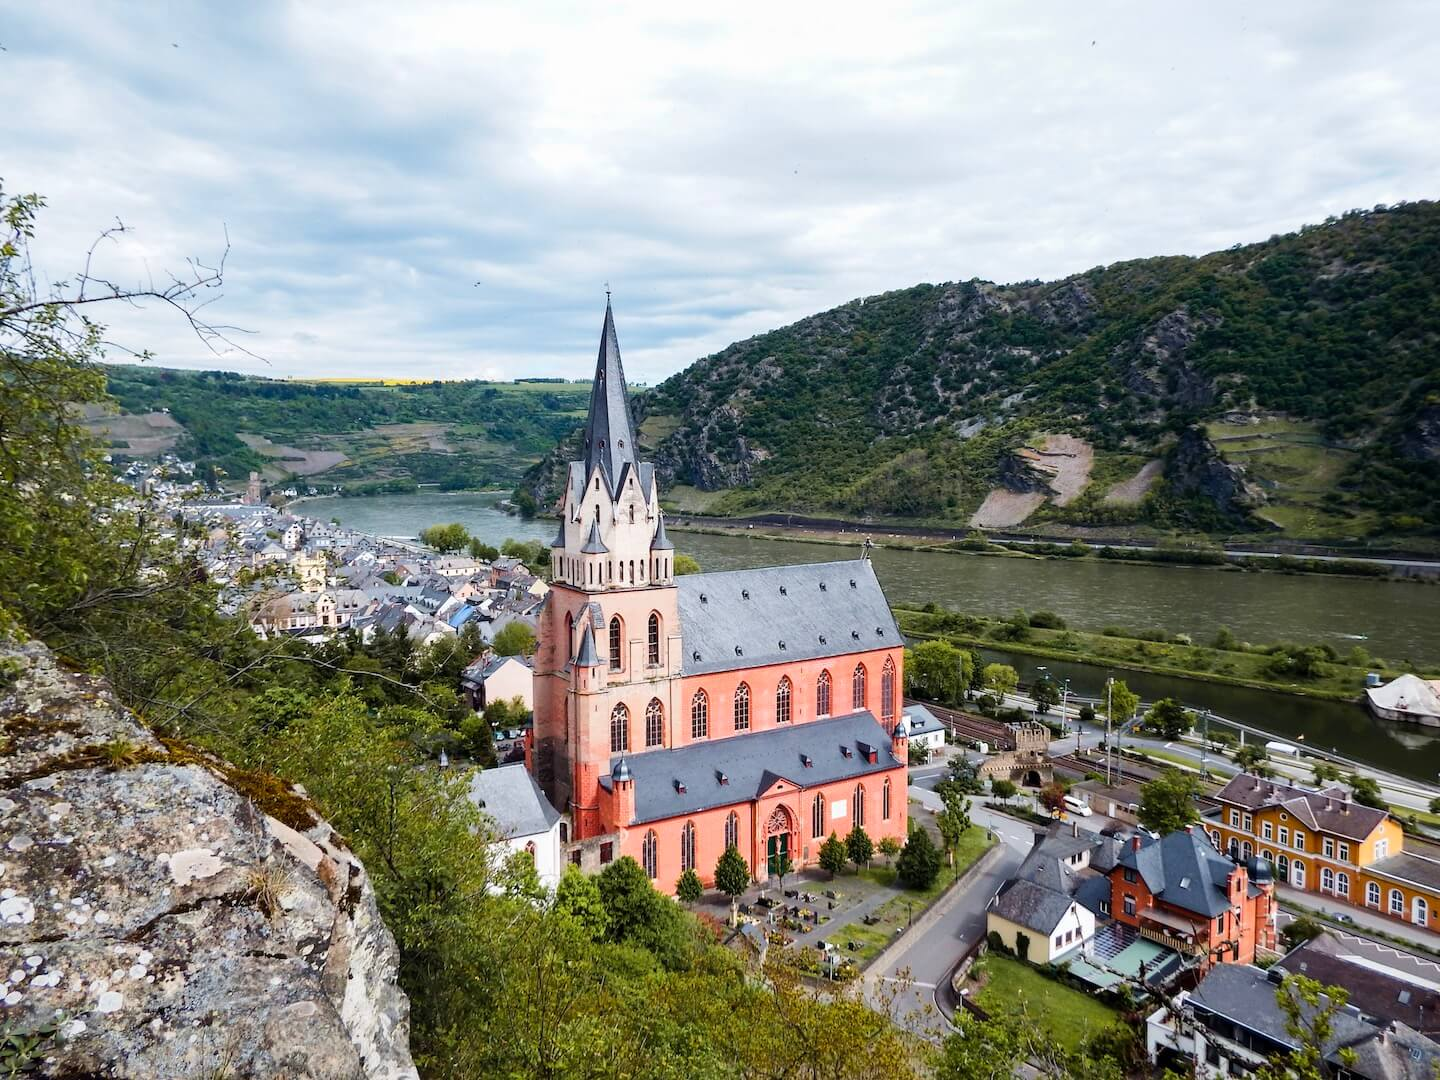 Liebfrauenkirche, Oberwesel, Germany - Upper Middle Rhine Valley Travel Guide